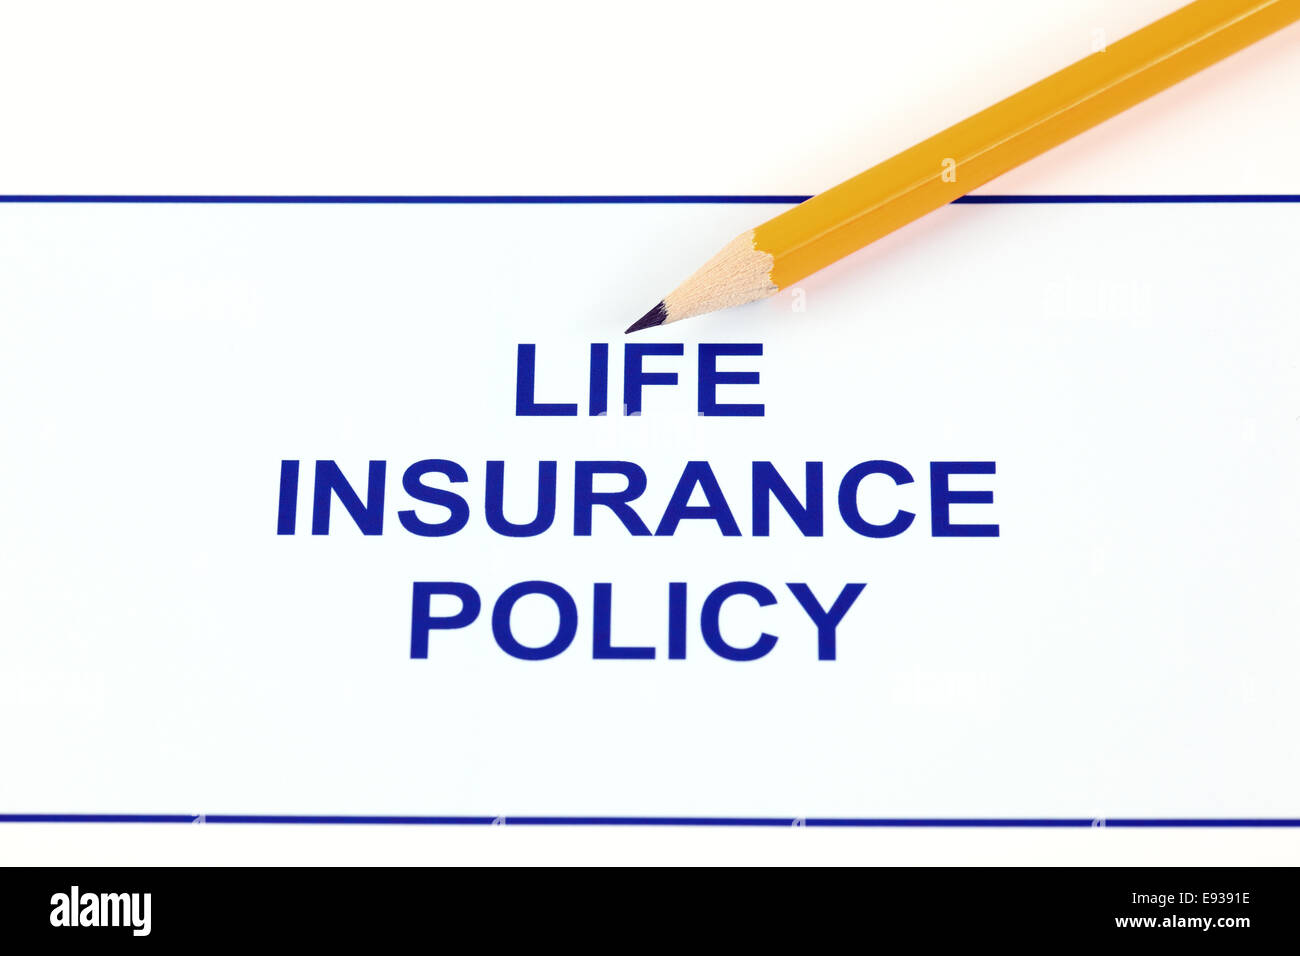 Life insurance policy with pencil. - Stock Image